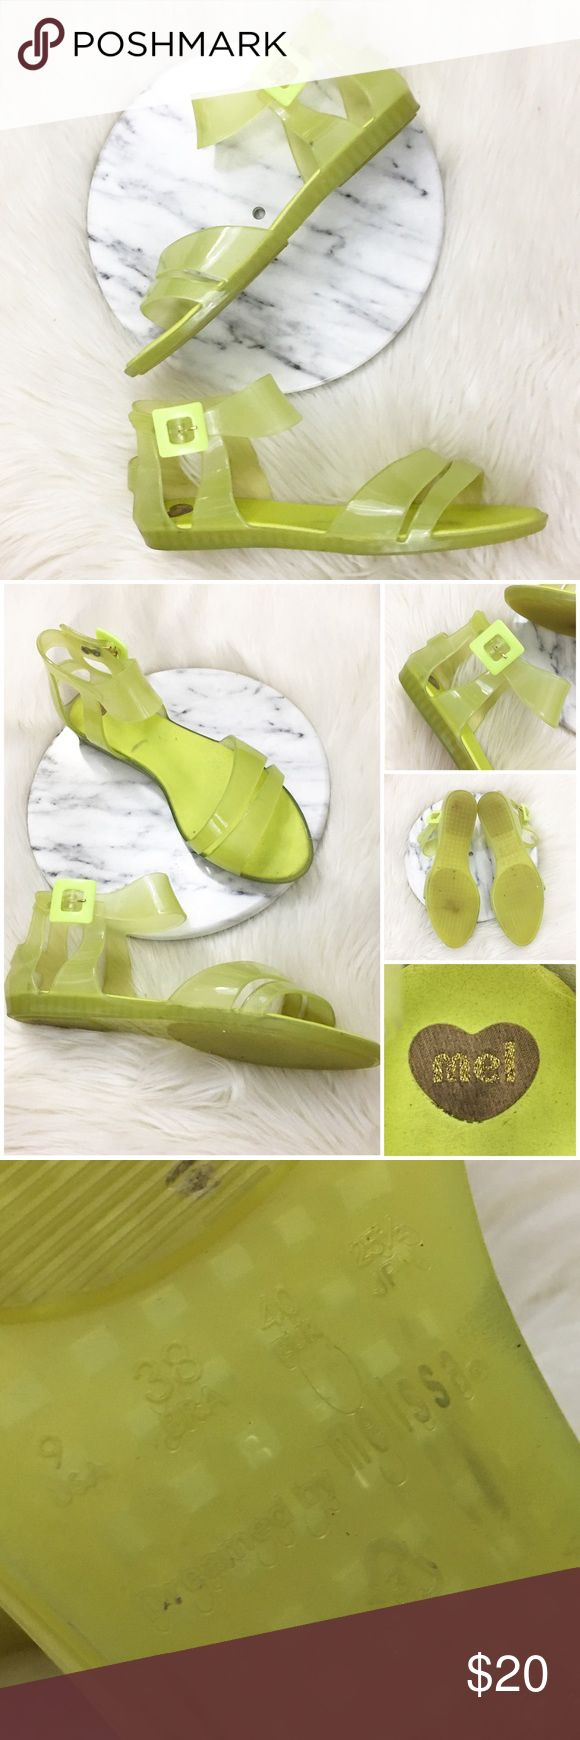 Melissa Yellow Lime Ballerina Jelly Flat Sandals Mel by Melissa Yellow Lime Ballerina Jelly Flat Sandals. Size 9. These do run true to size and are one of the most comfortable Jelly shoes I've worn. Thank you for looking at my listing. Please feel free to comment with any questions (no trades/modeling).  •Condition:  VGUC, no major flaws. Light discoloration on the inside towards the front. No outside flaws. Bottoms are in great condition as well.   25% off all Bundles or 3+ items…